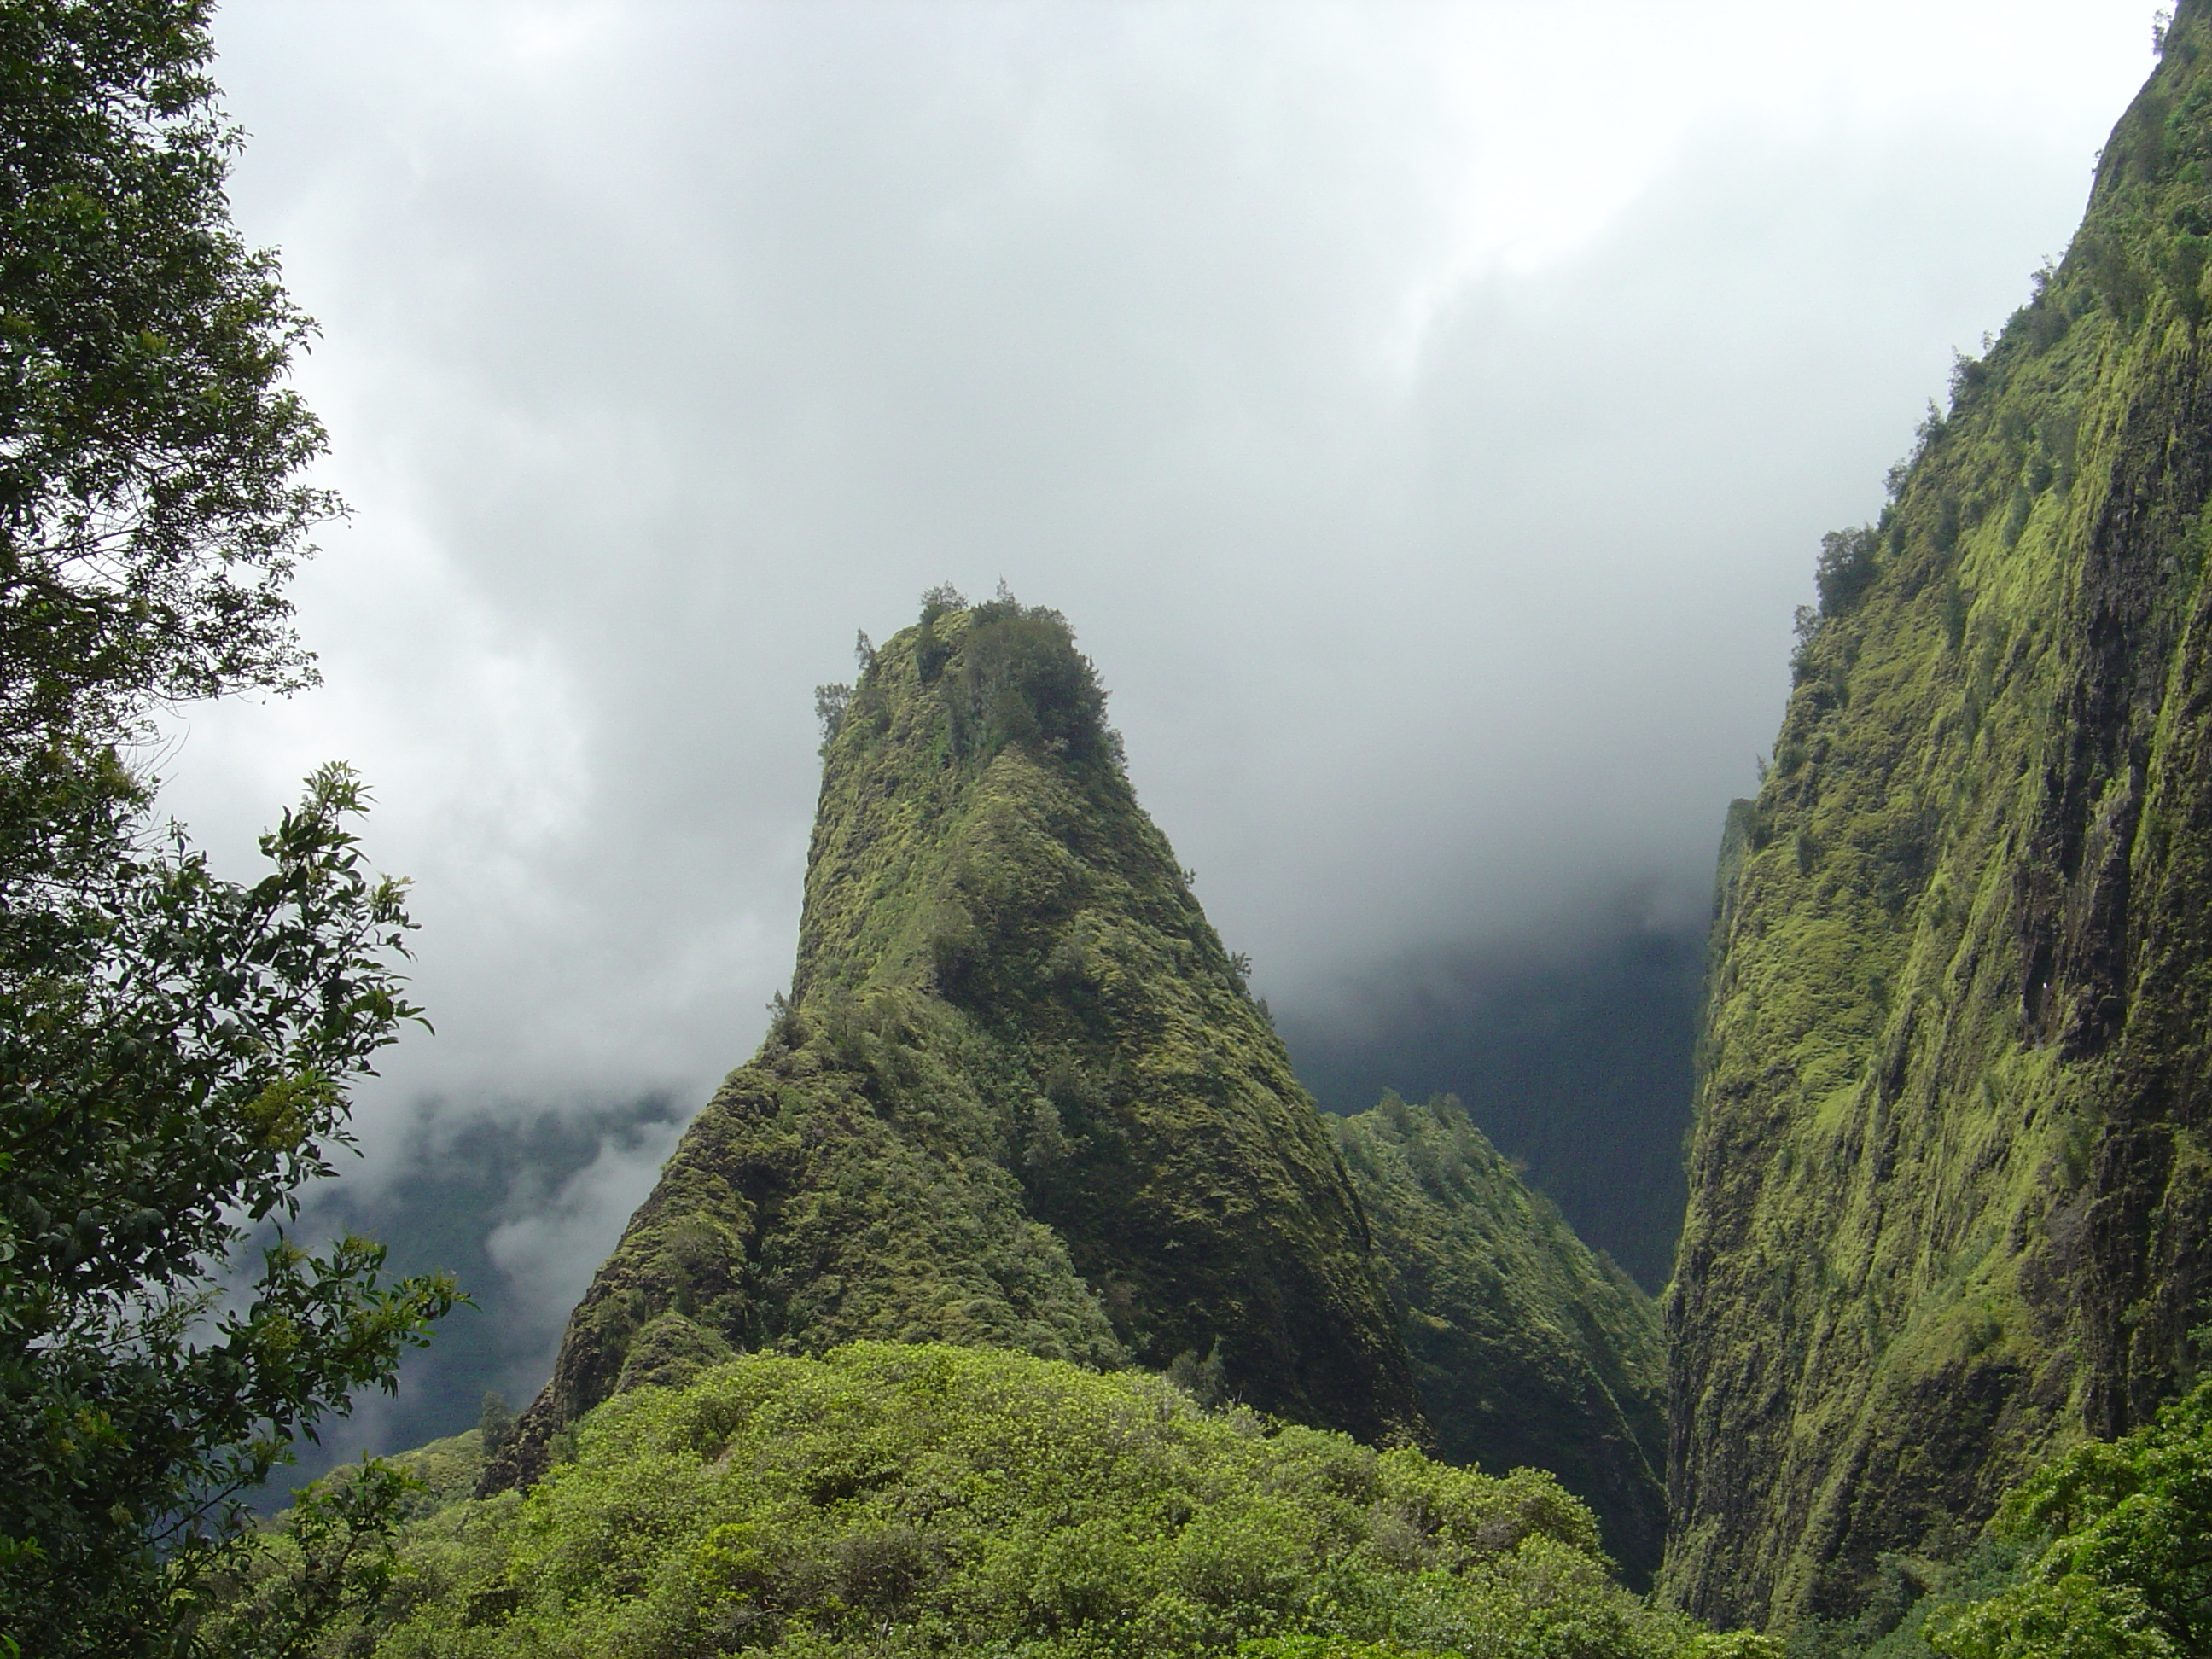 View of the Ioa Needle from one of the hiking trails